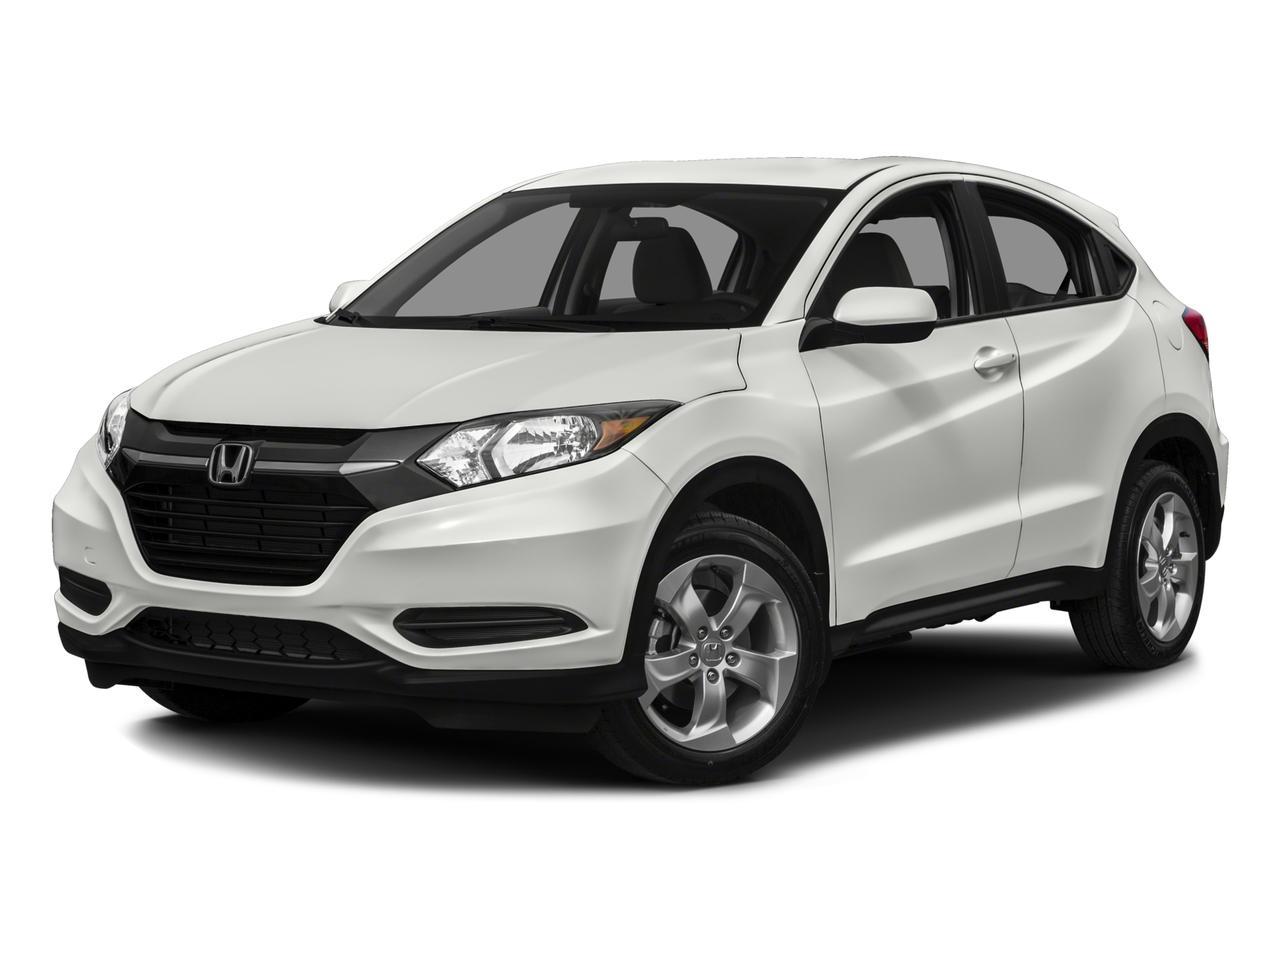 2016 Honda HR-V Vehicle Photo in Bowie, MD 20716